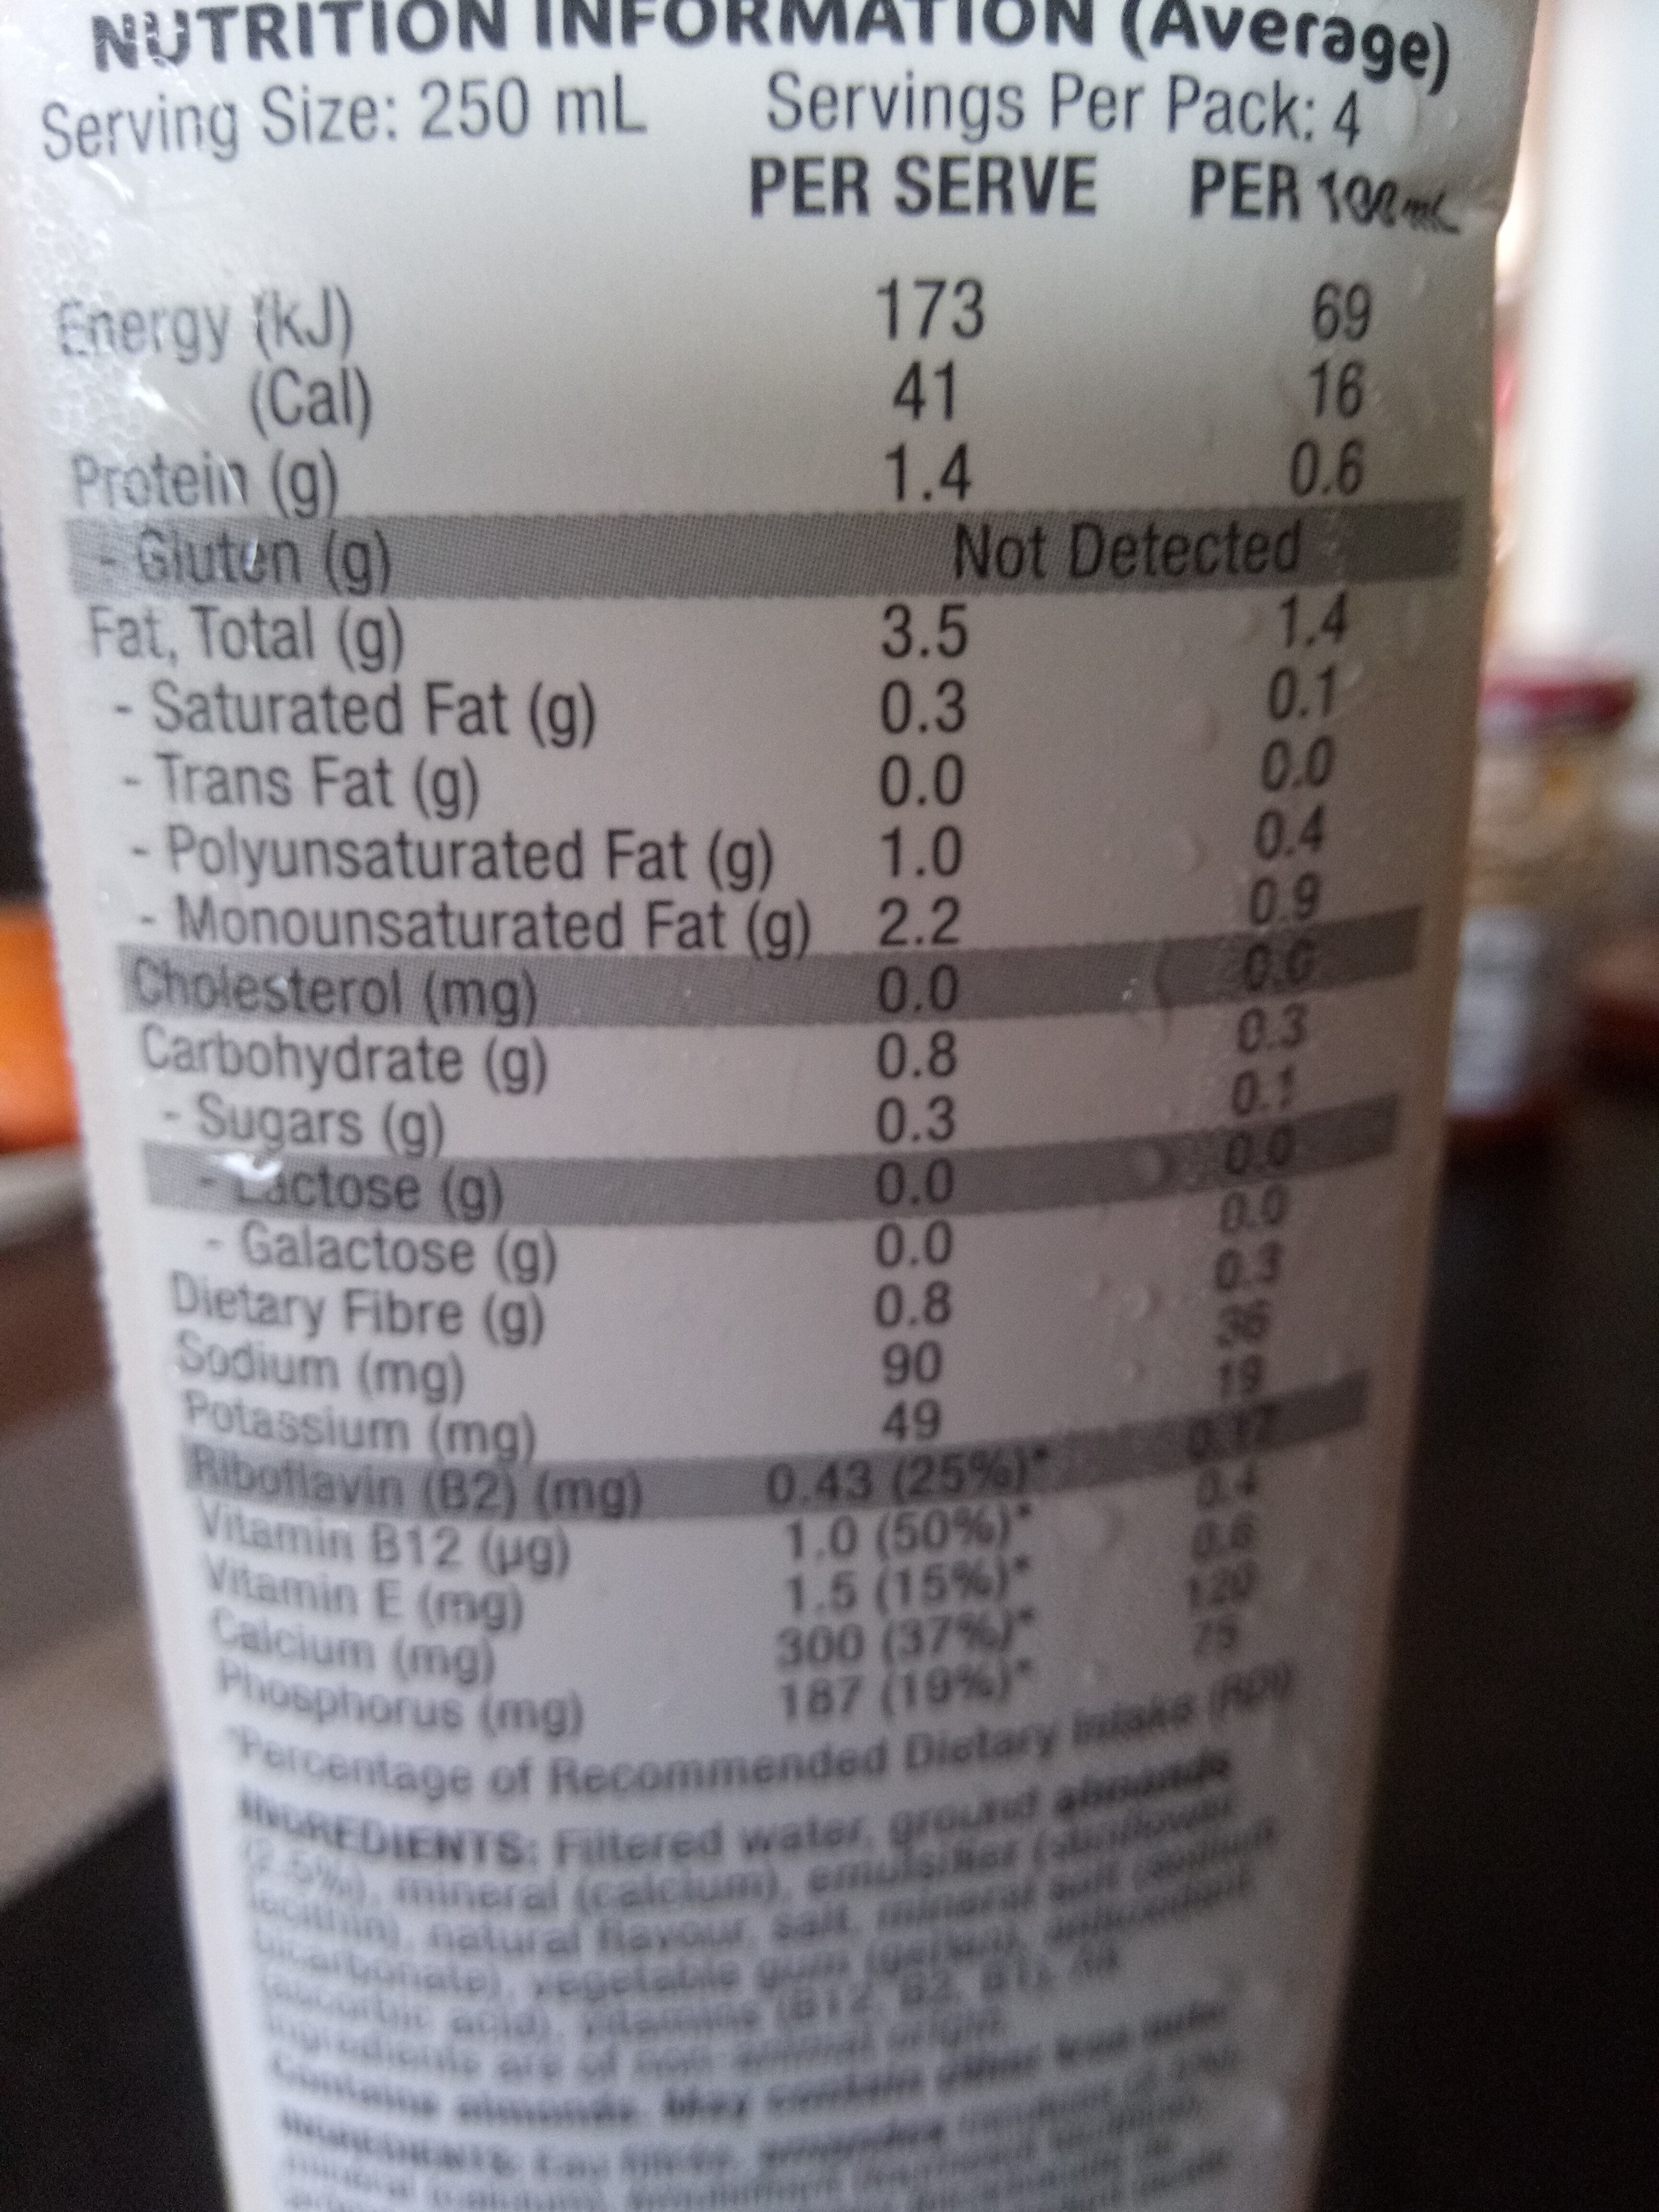 So Good Unsweetened Almond Milk Dairy Substitute Uht - Nutrition facts - fr